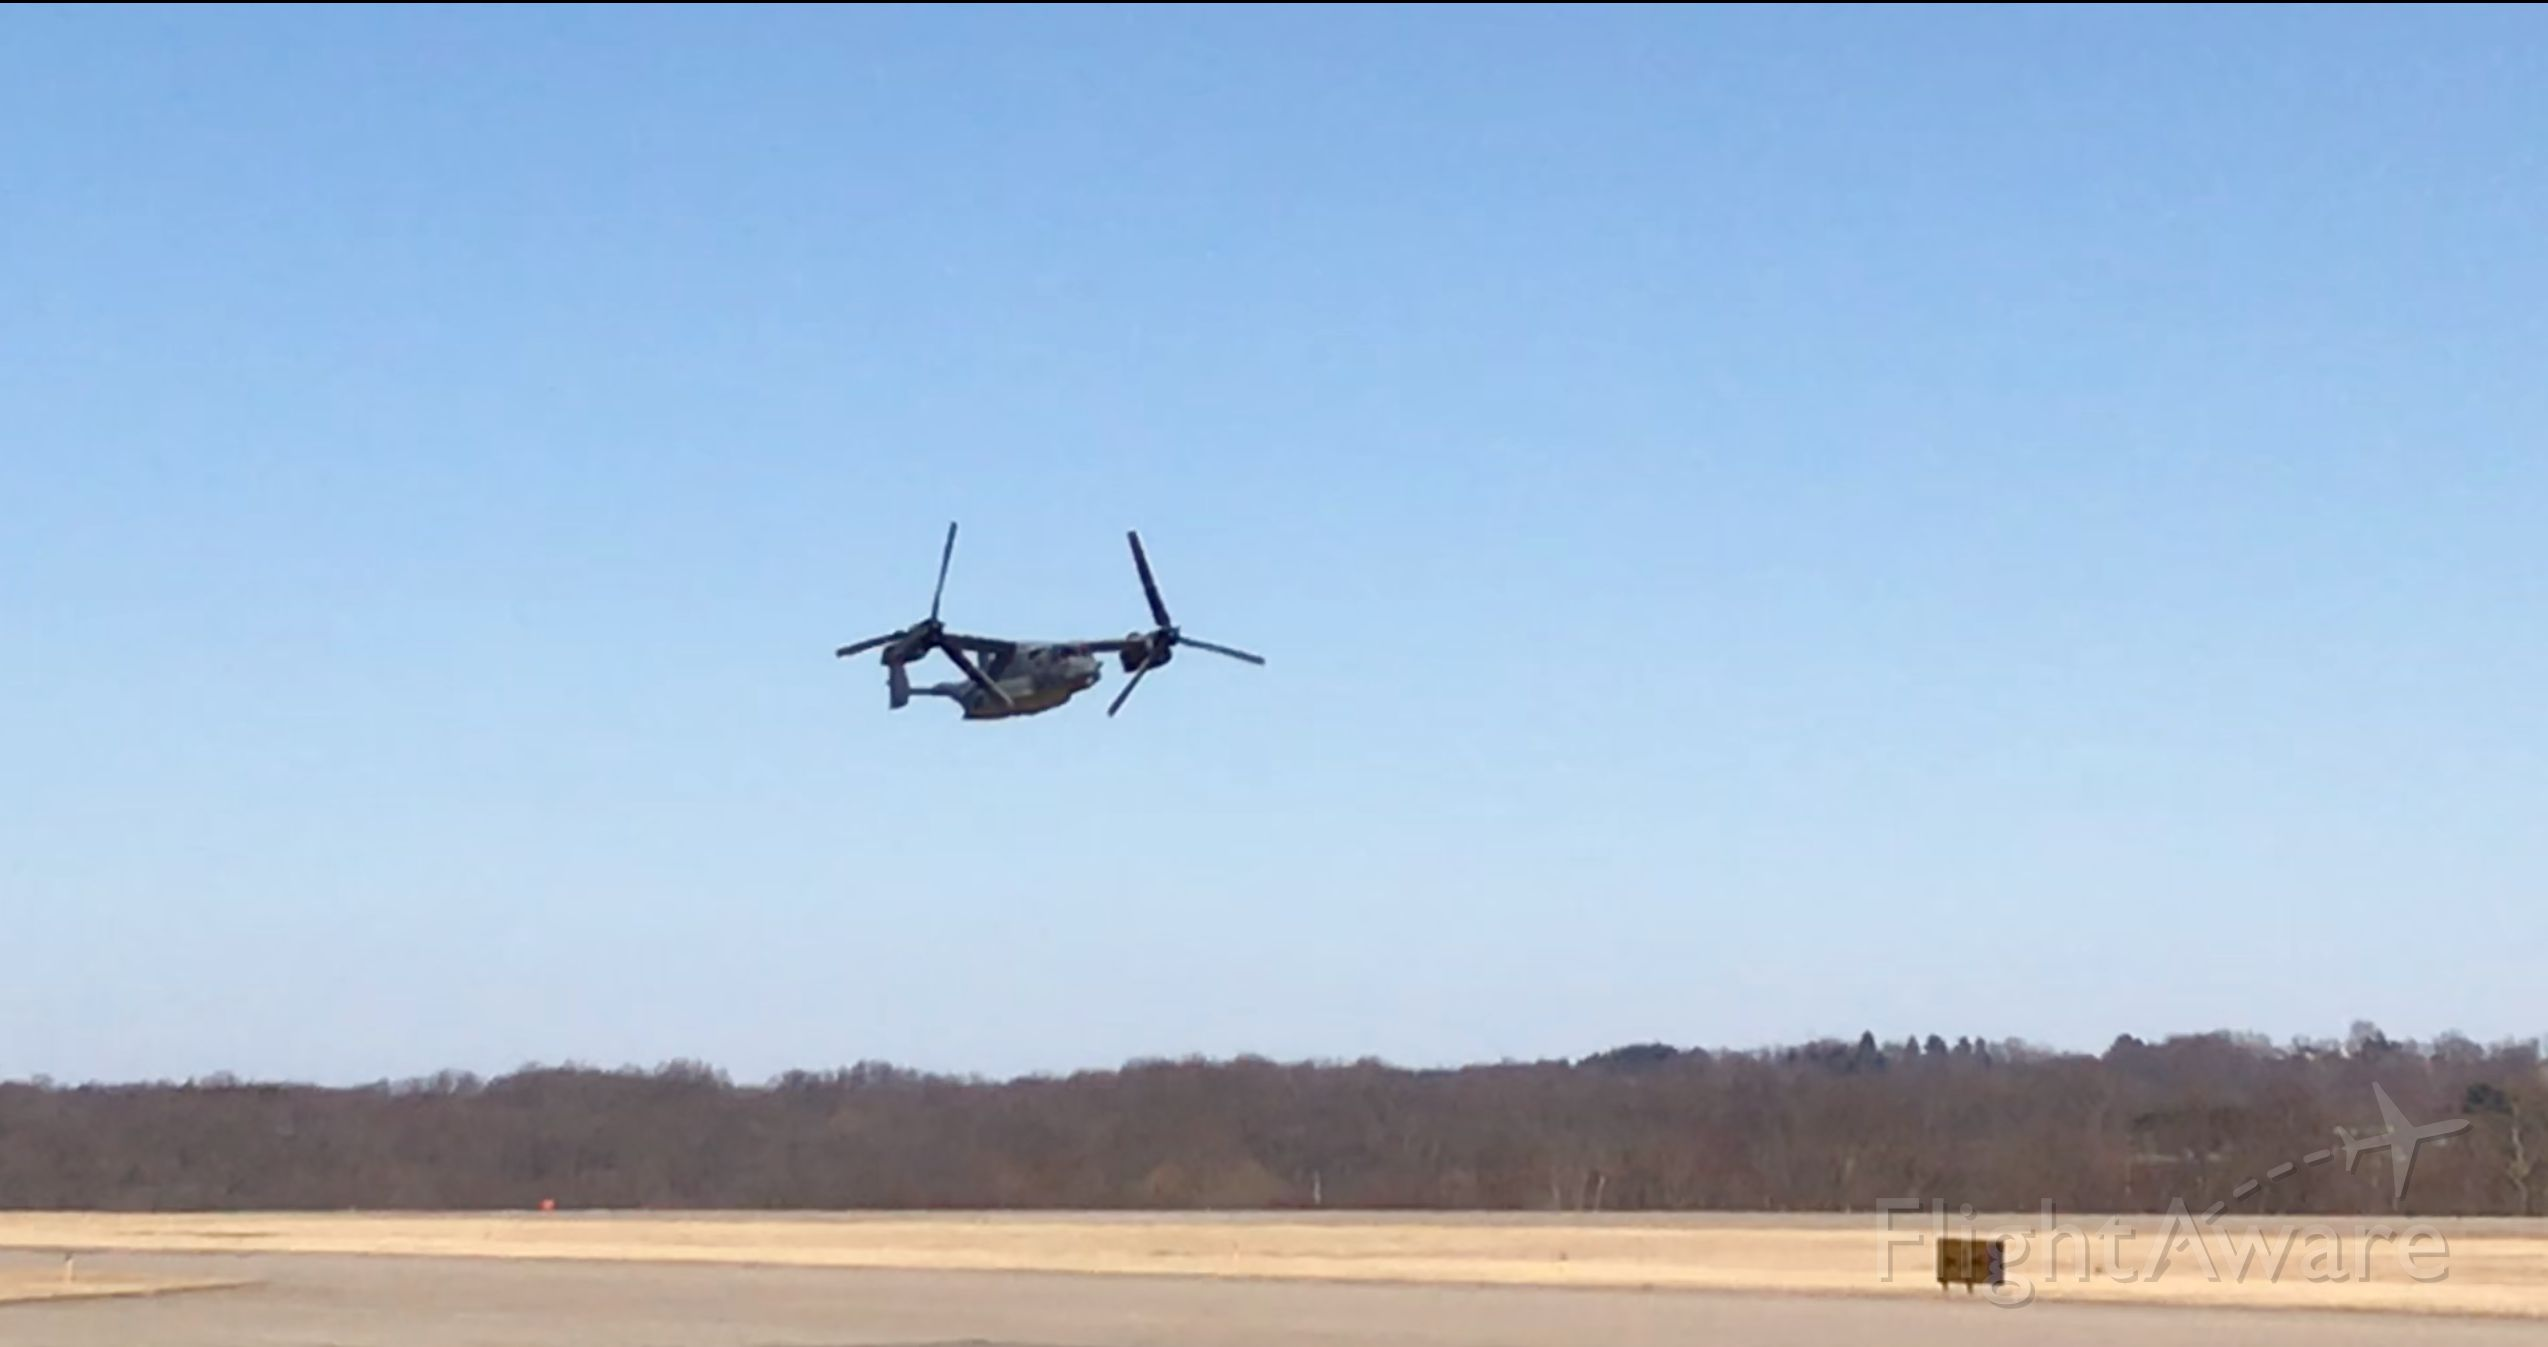 0779 — - Air Force Osprey  (tail # 0779) out of Destin, FL refueling and fly-by in OH